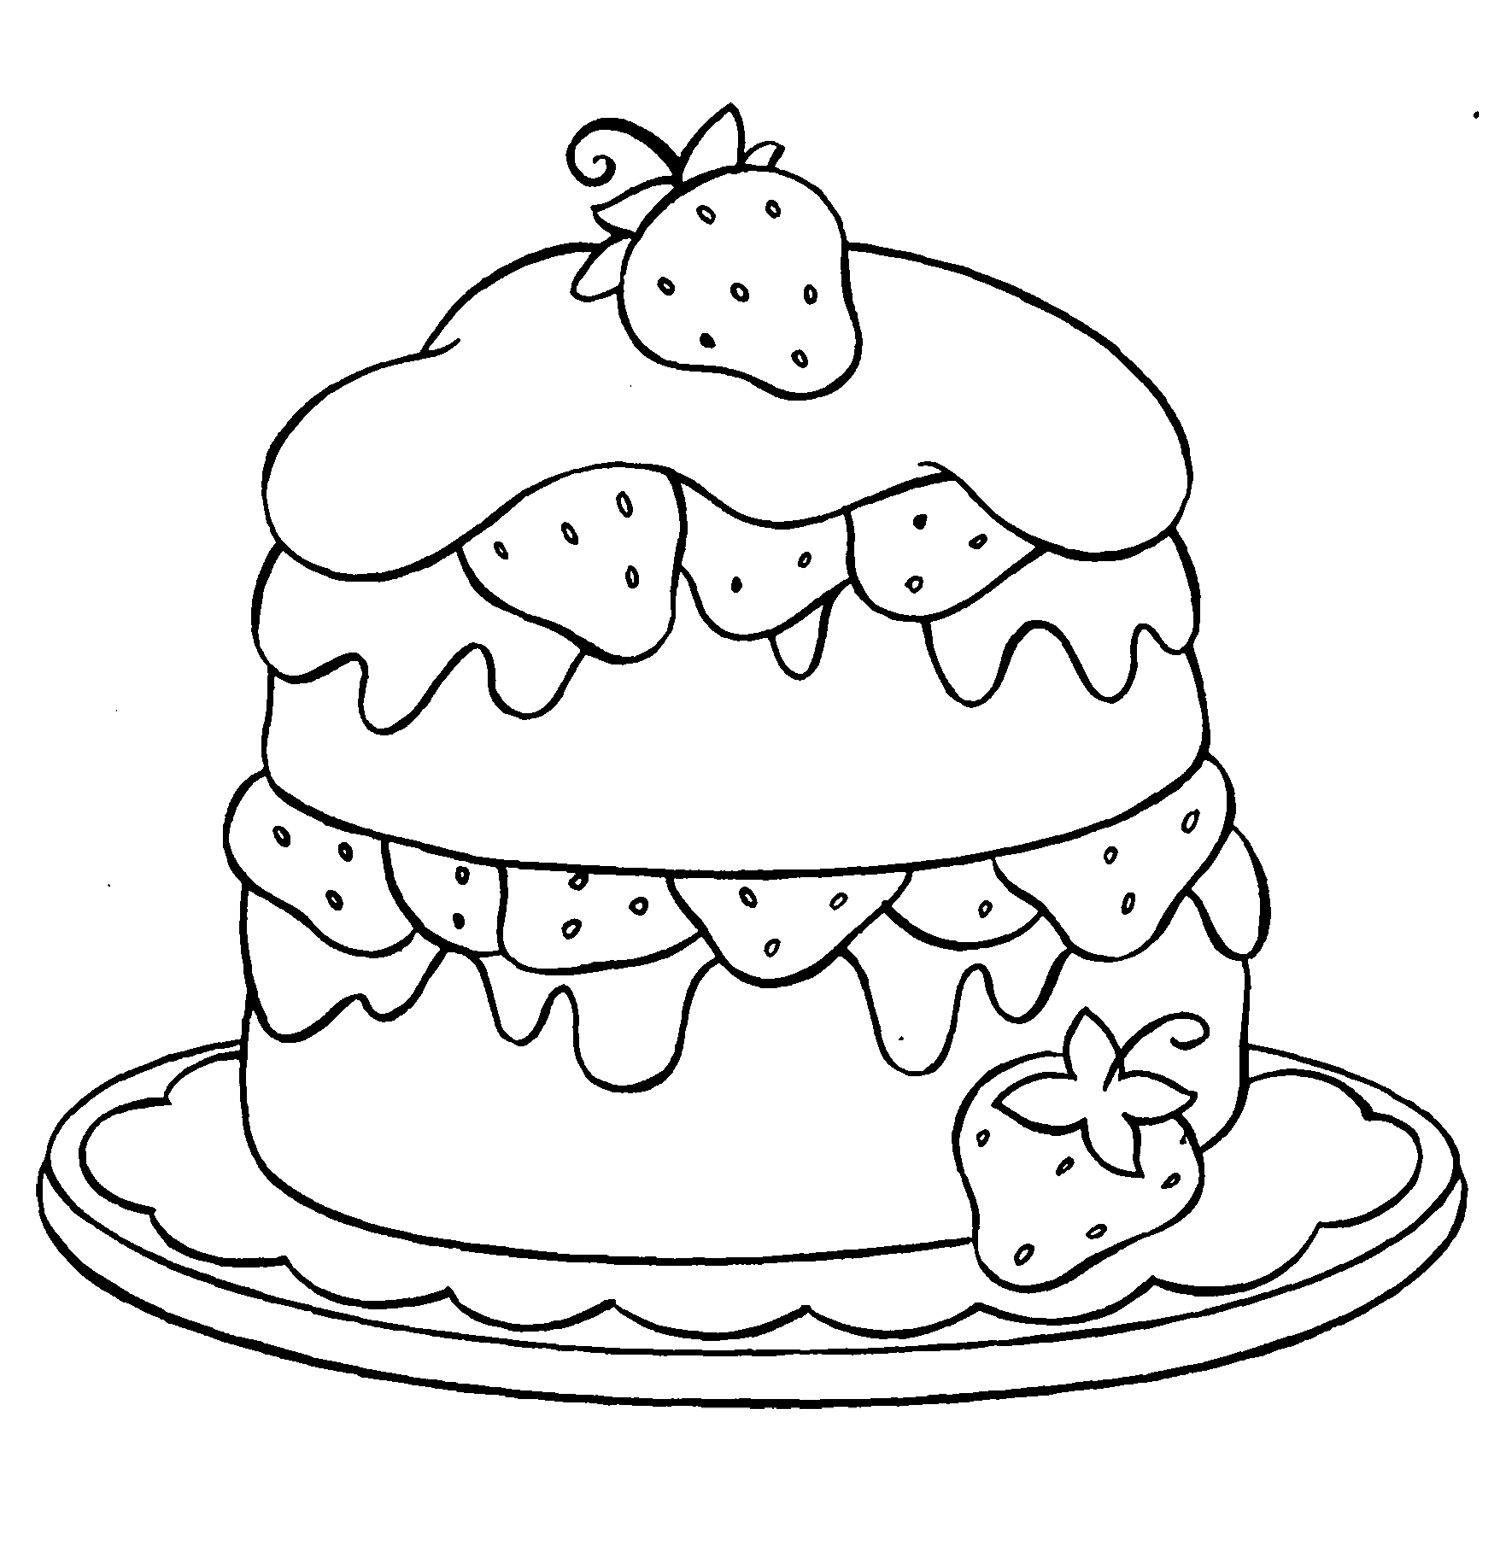 coloring pages cake free printable birthday cake coloring pages for kids pages coloring cake